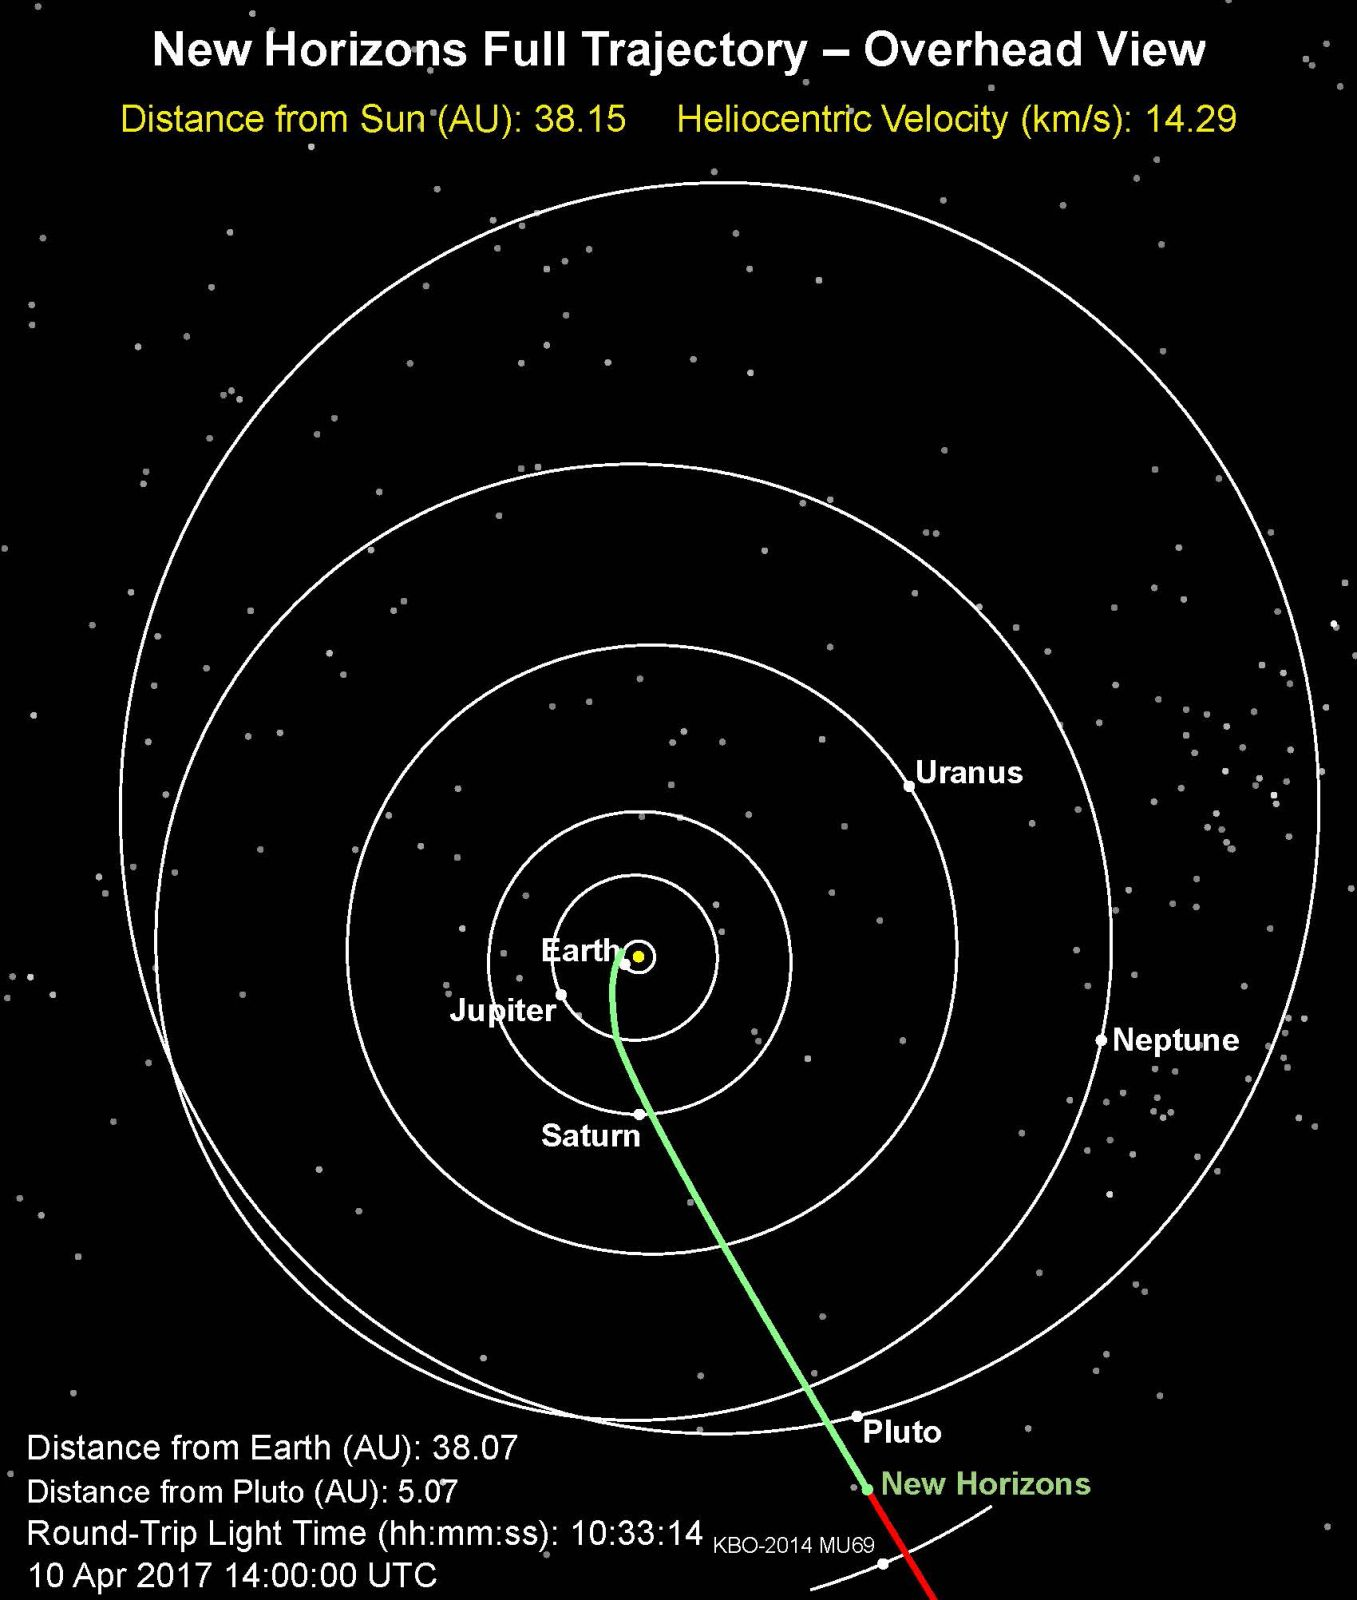 New Horizons Full Trajectory – Overhead View